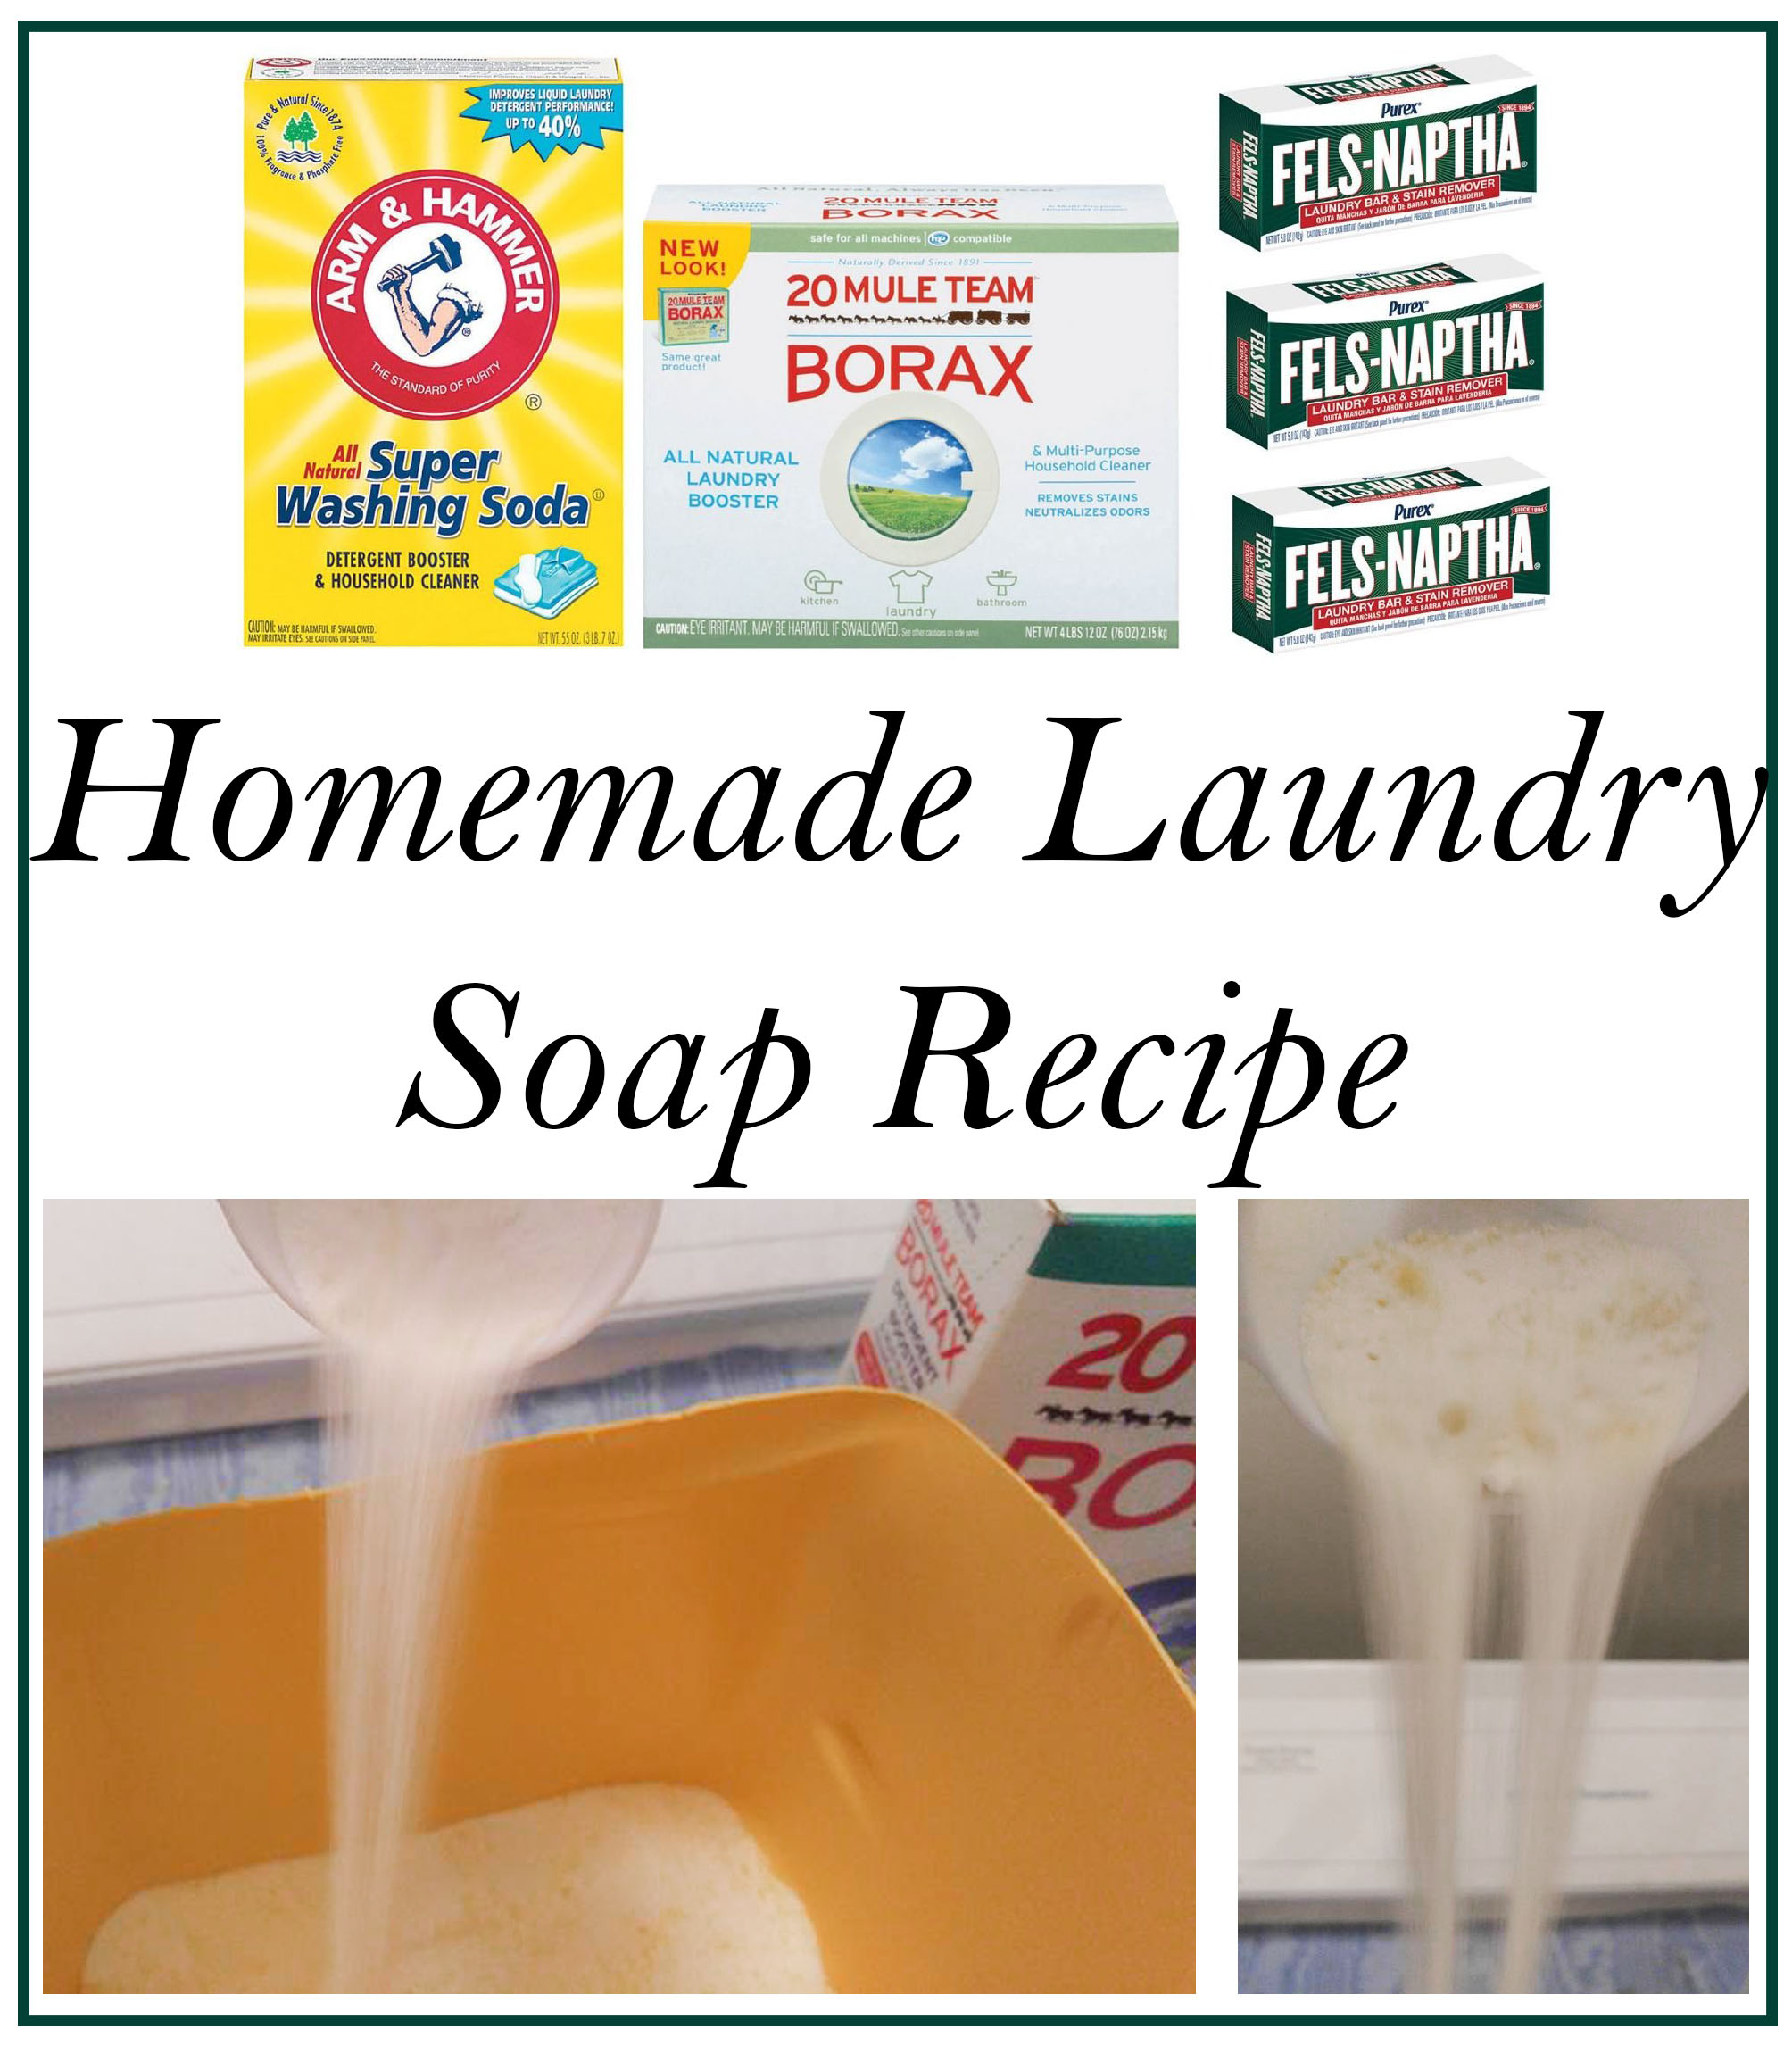 Homemade Laundry Soap